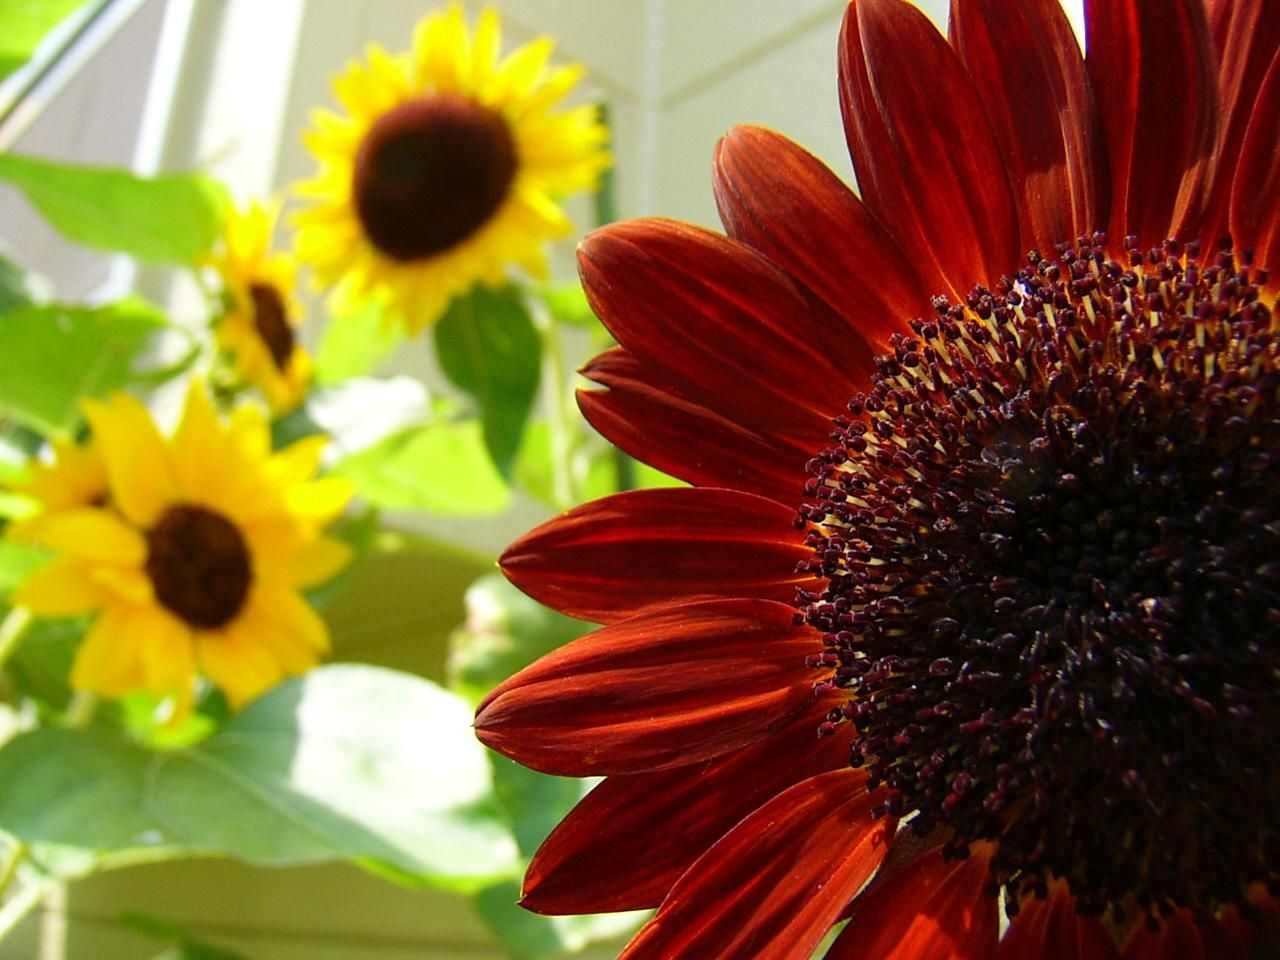 Red Sunflower Wallpapers - Top Free Red Sunflower ...